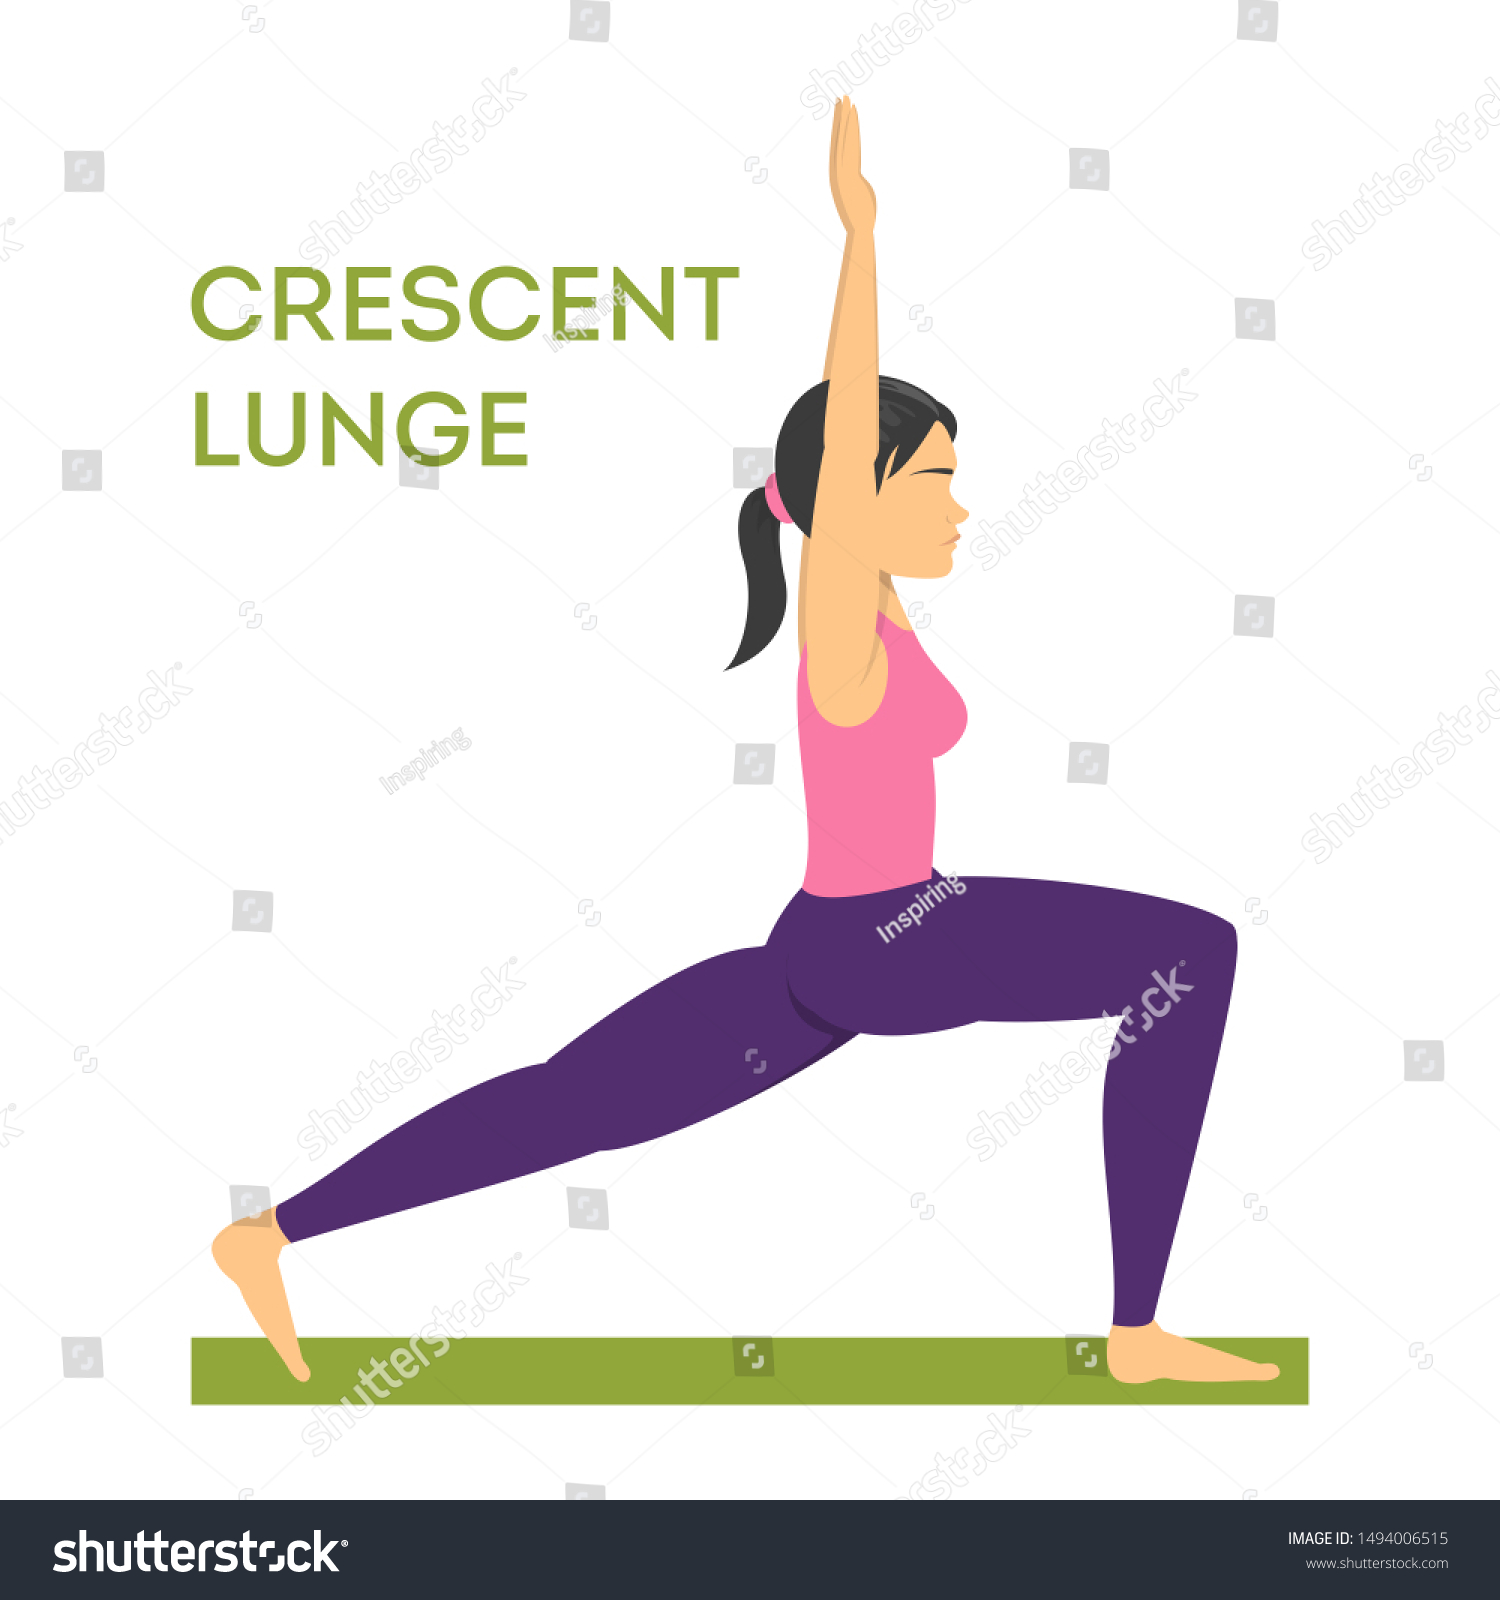 Woman Standing Crescent Lunge Yoga Pose Stock Vector (Royalty Free